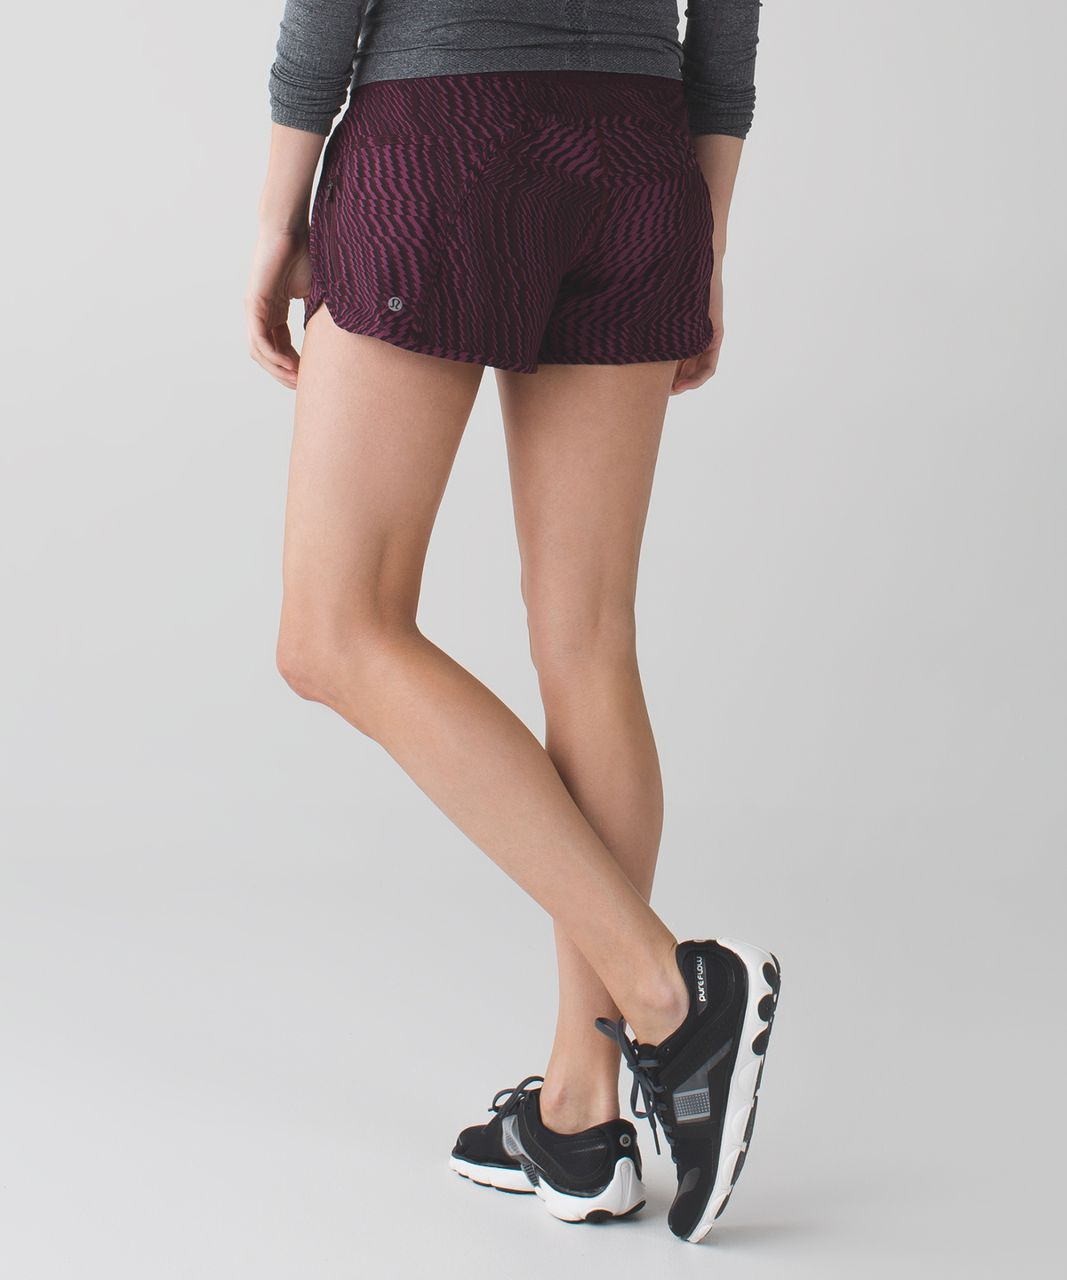 Lululemon Tracker Short III *4-way Stretch - Shifted Horizon Red Grape Black / Bordeaux Drama